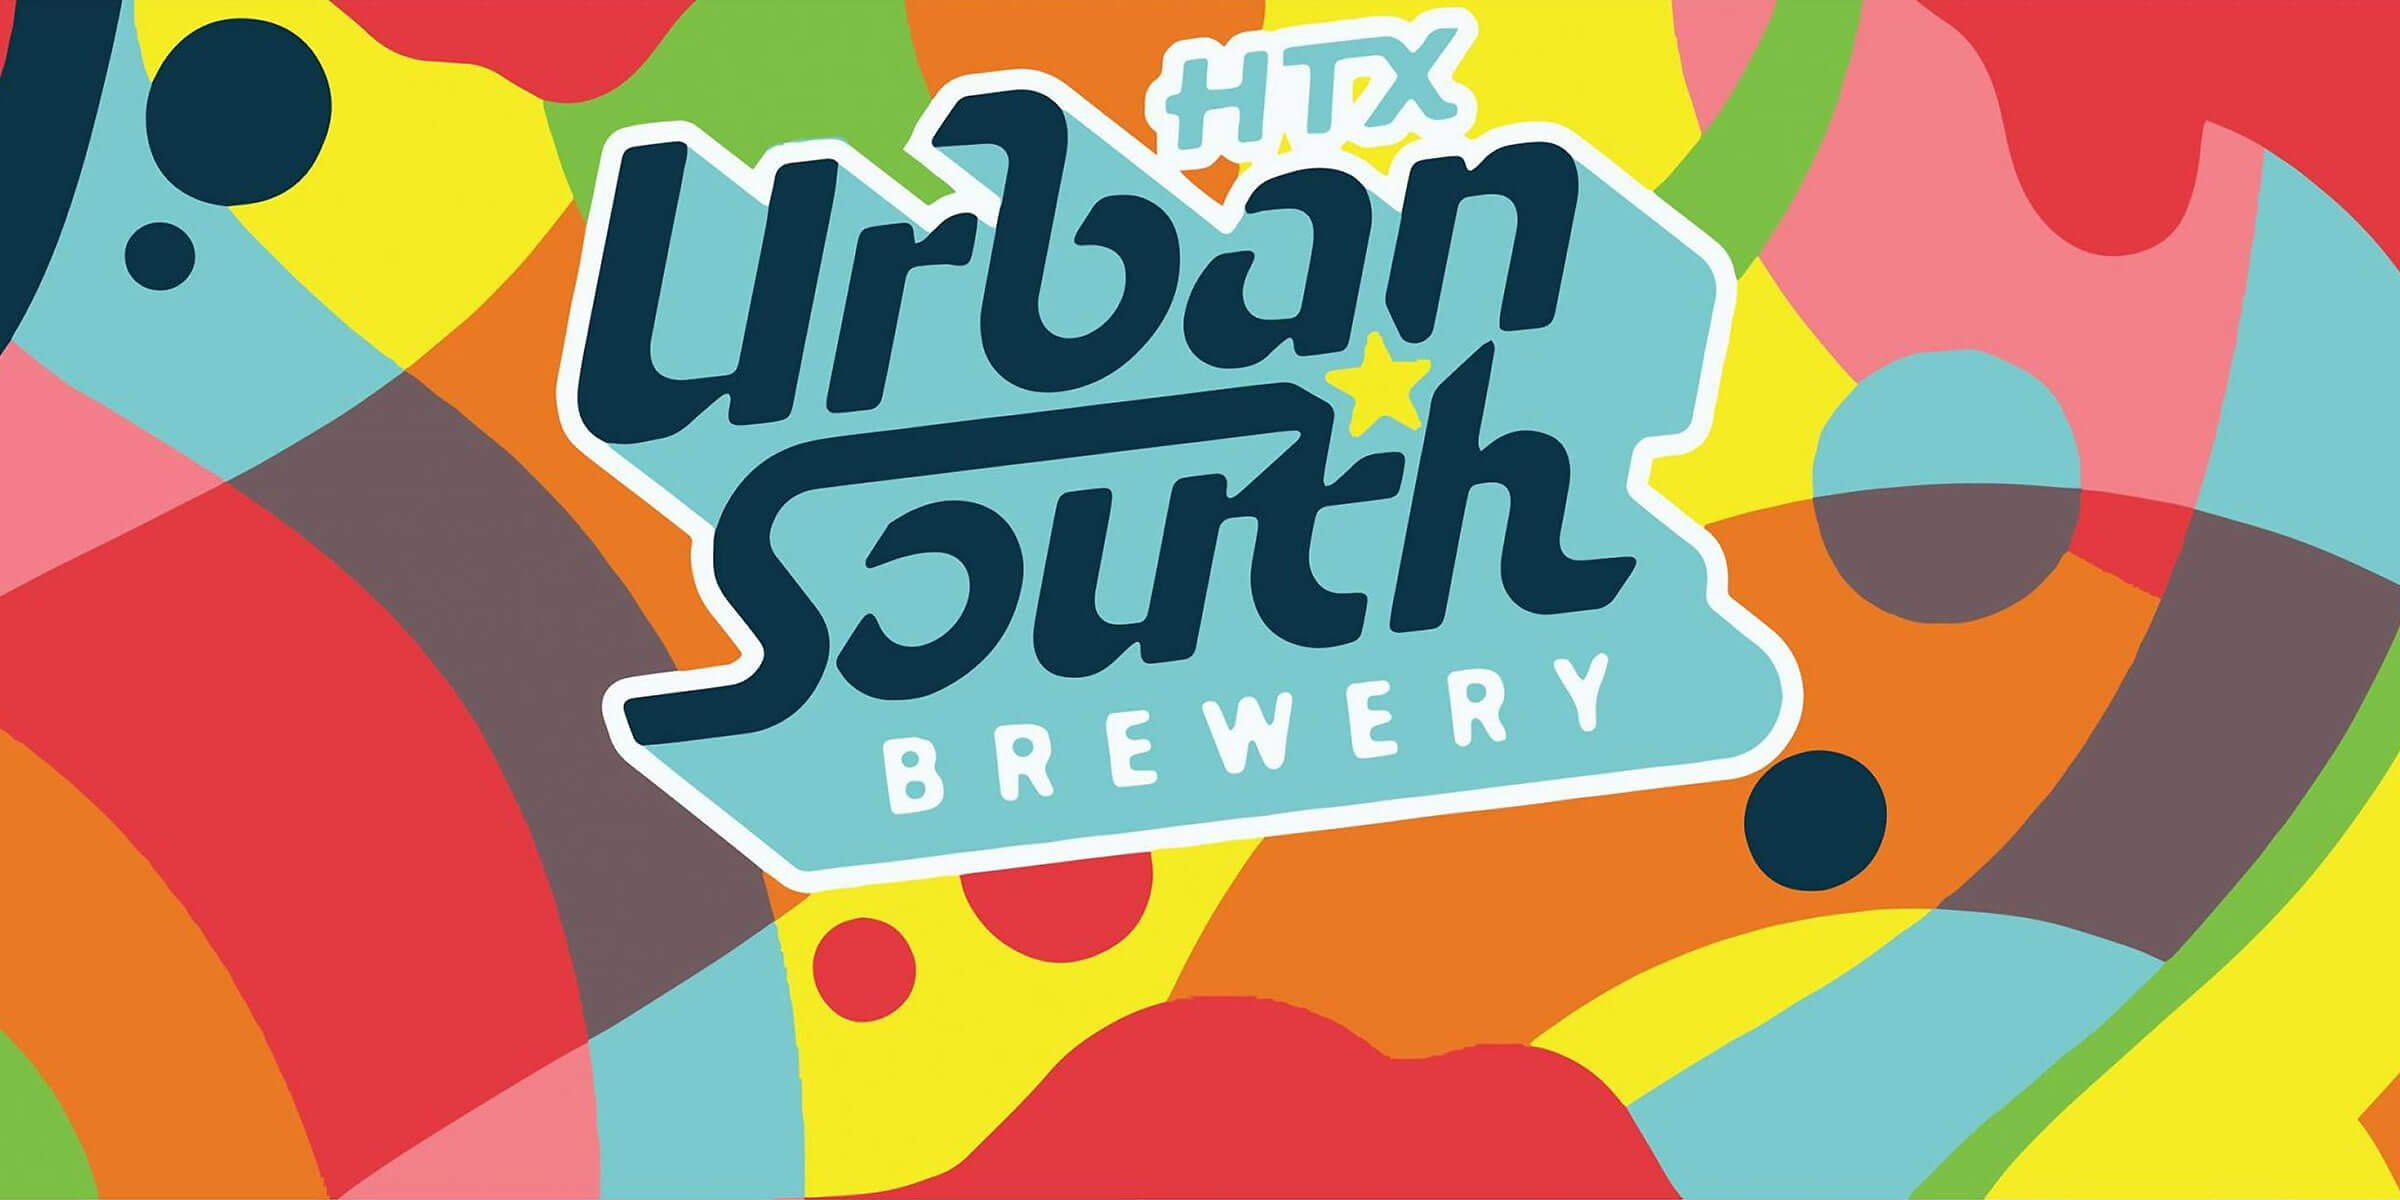 Urban South Brewery's first satellite brewery will open in just a few days at the Sawyer Yards District in Houston, Texas.